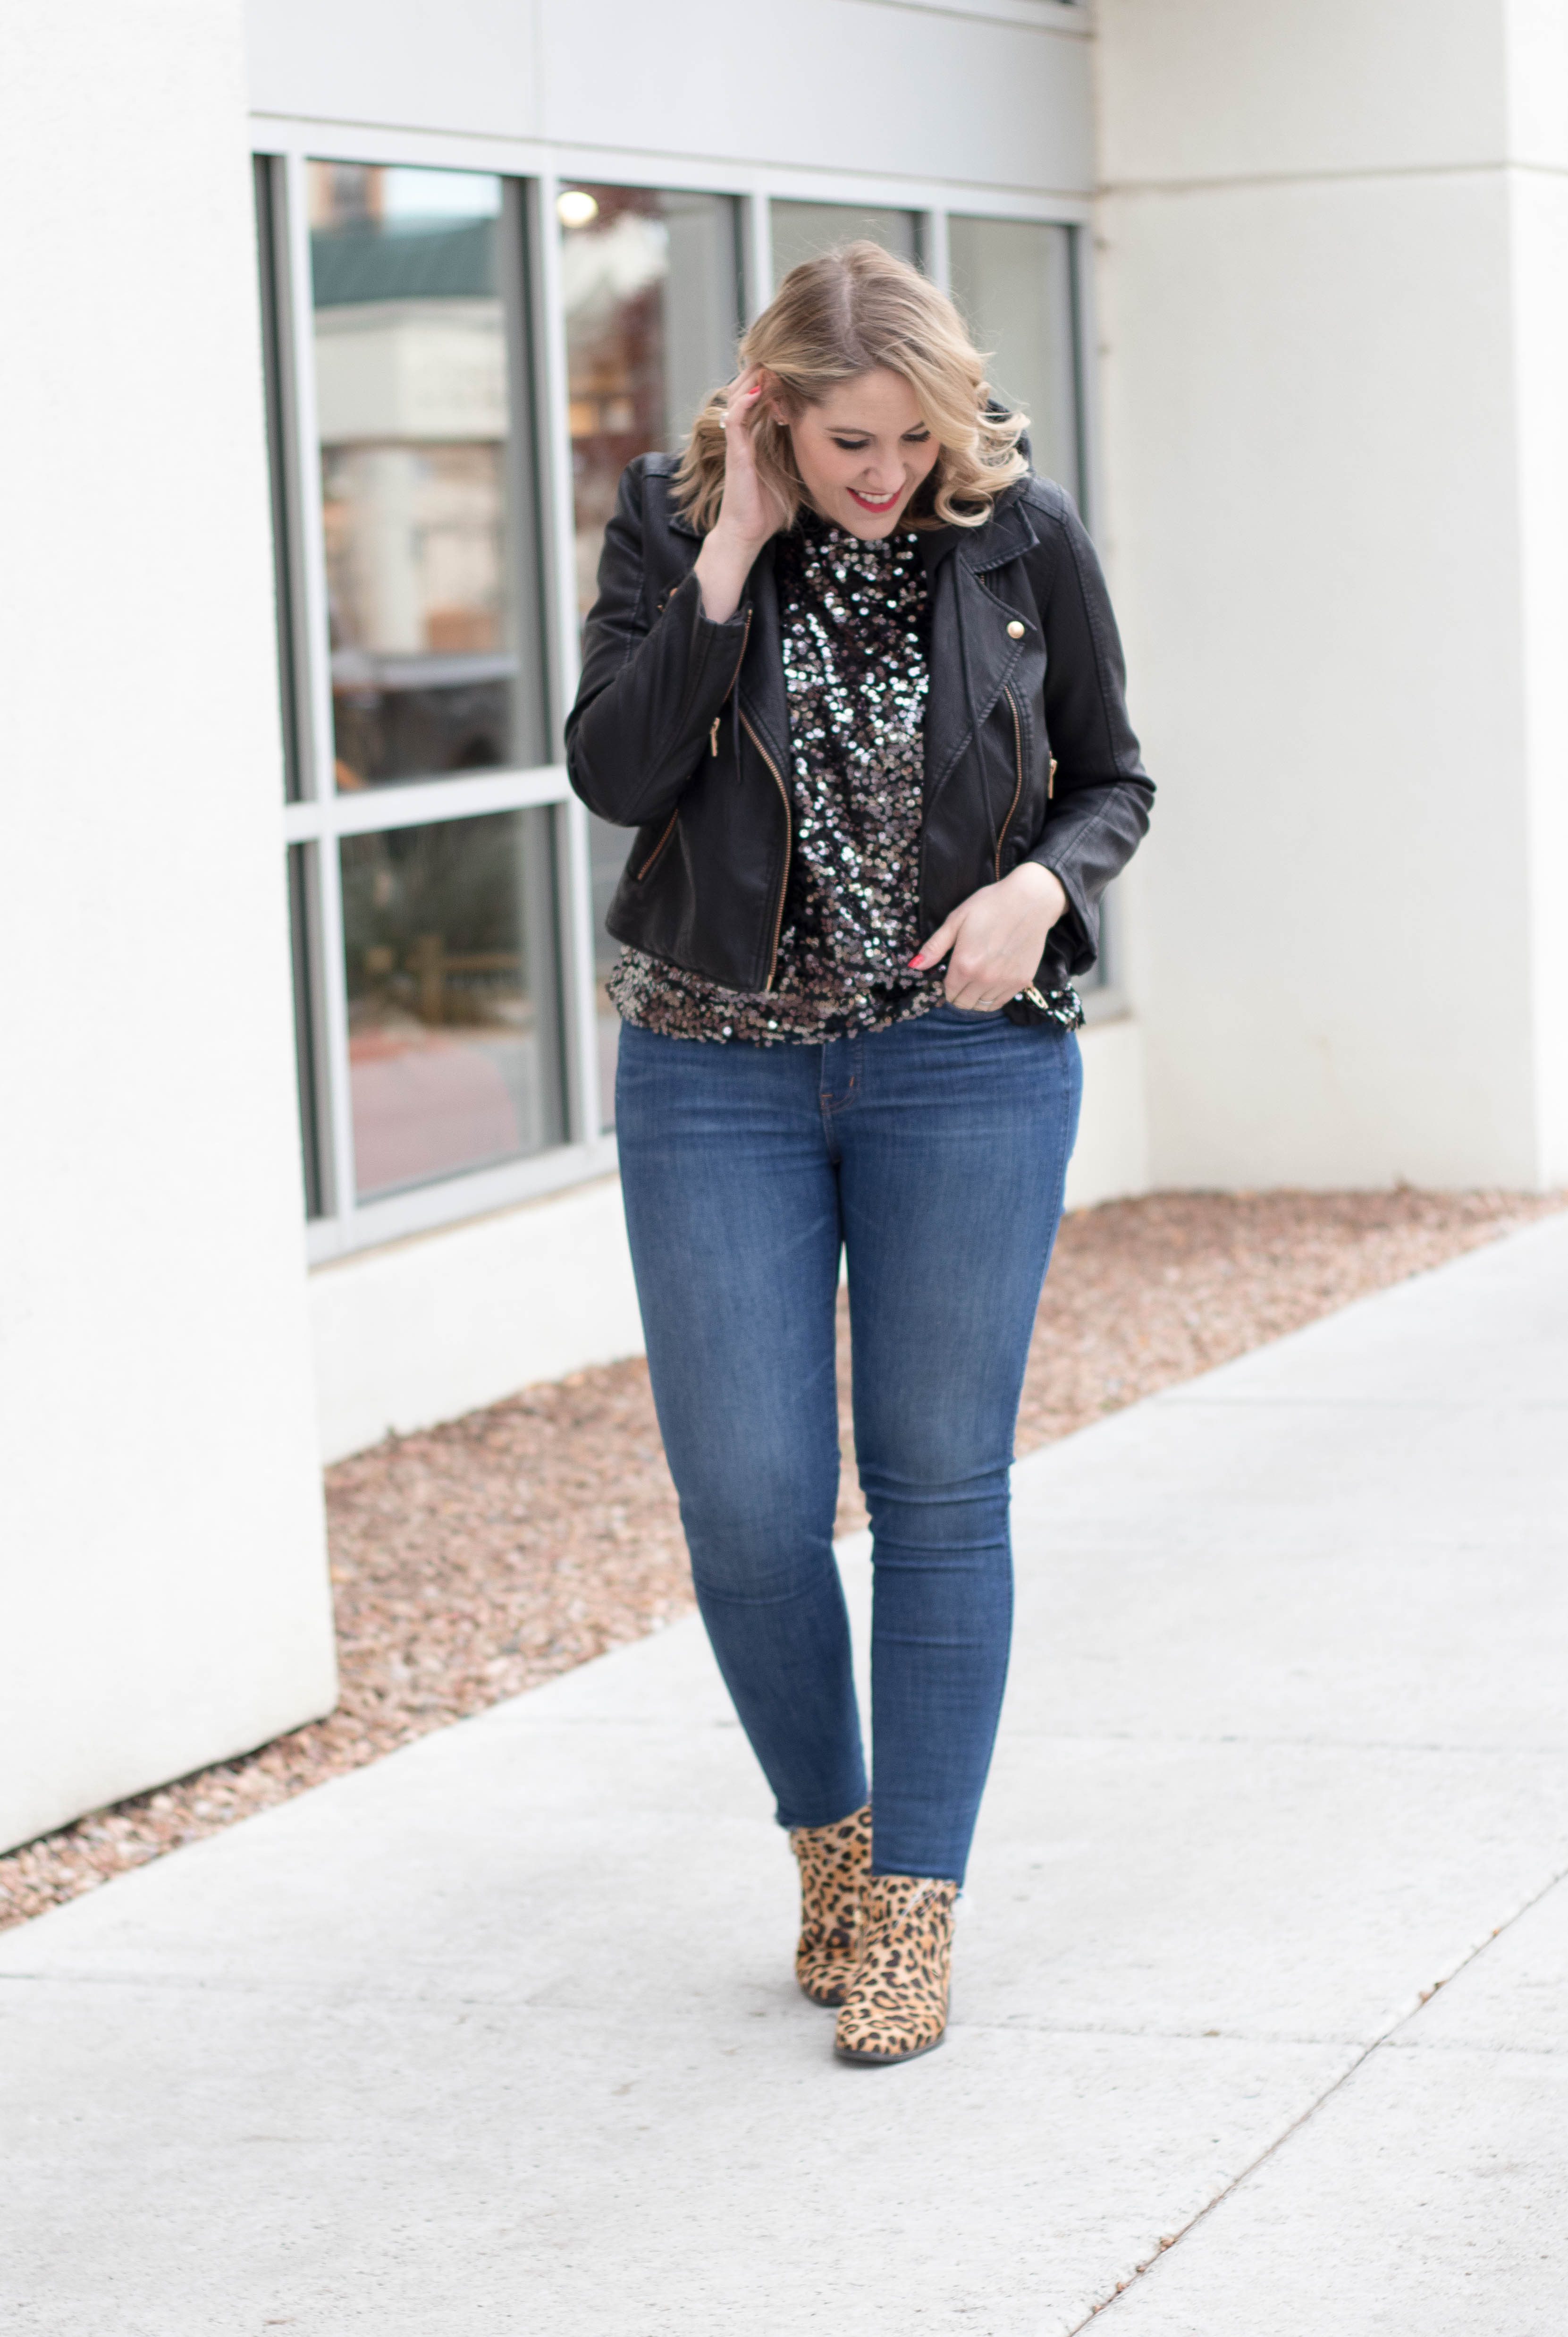 sequin top and leopard boots outfit #tallfashion #holidaystyle #everydaymadewell